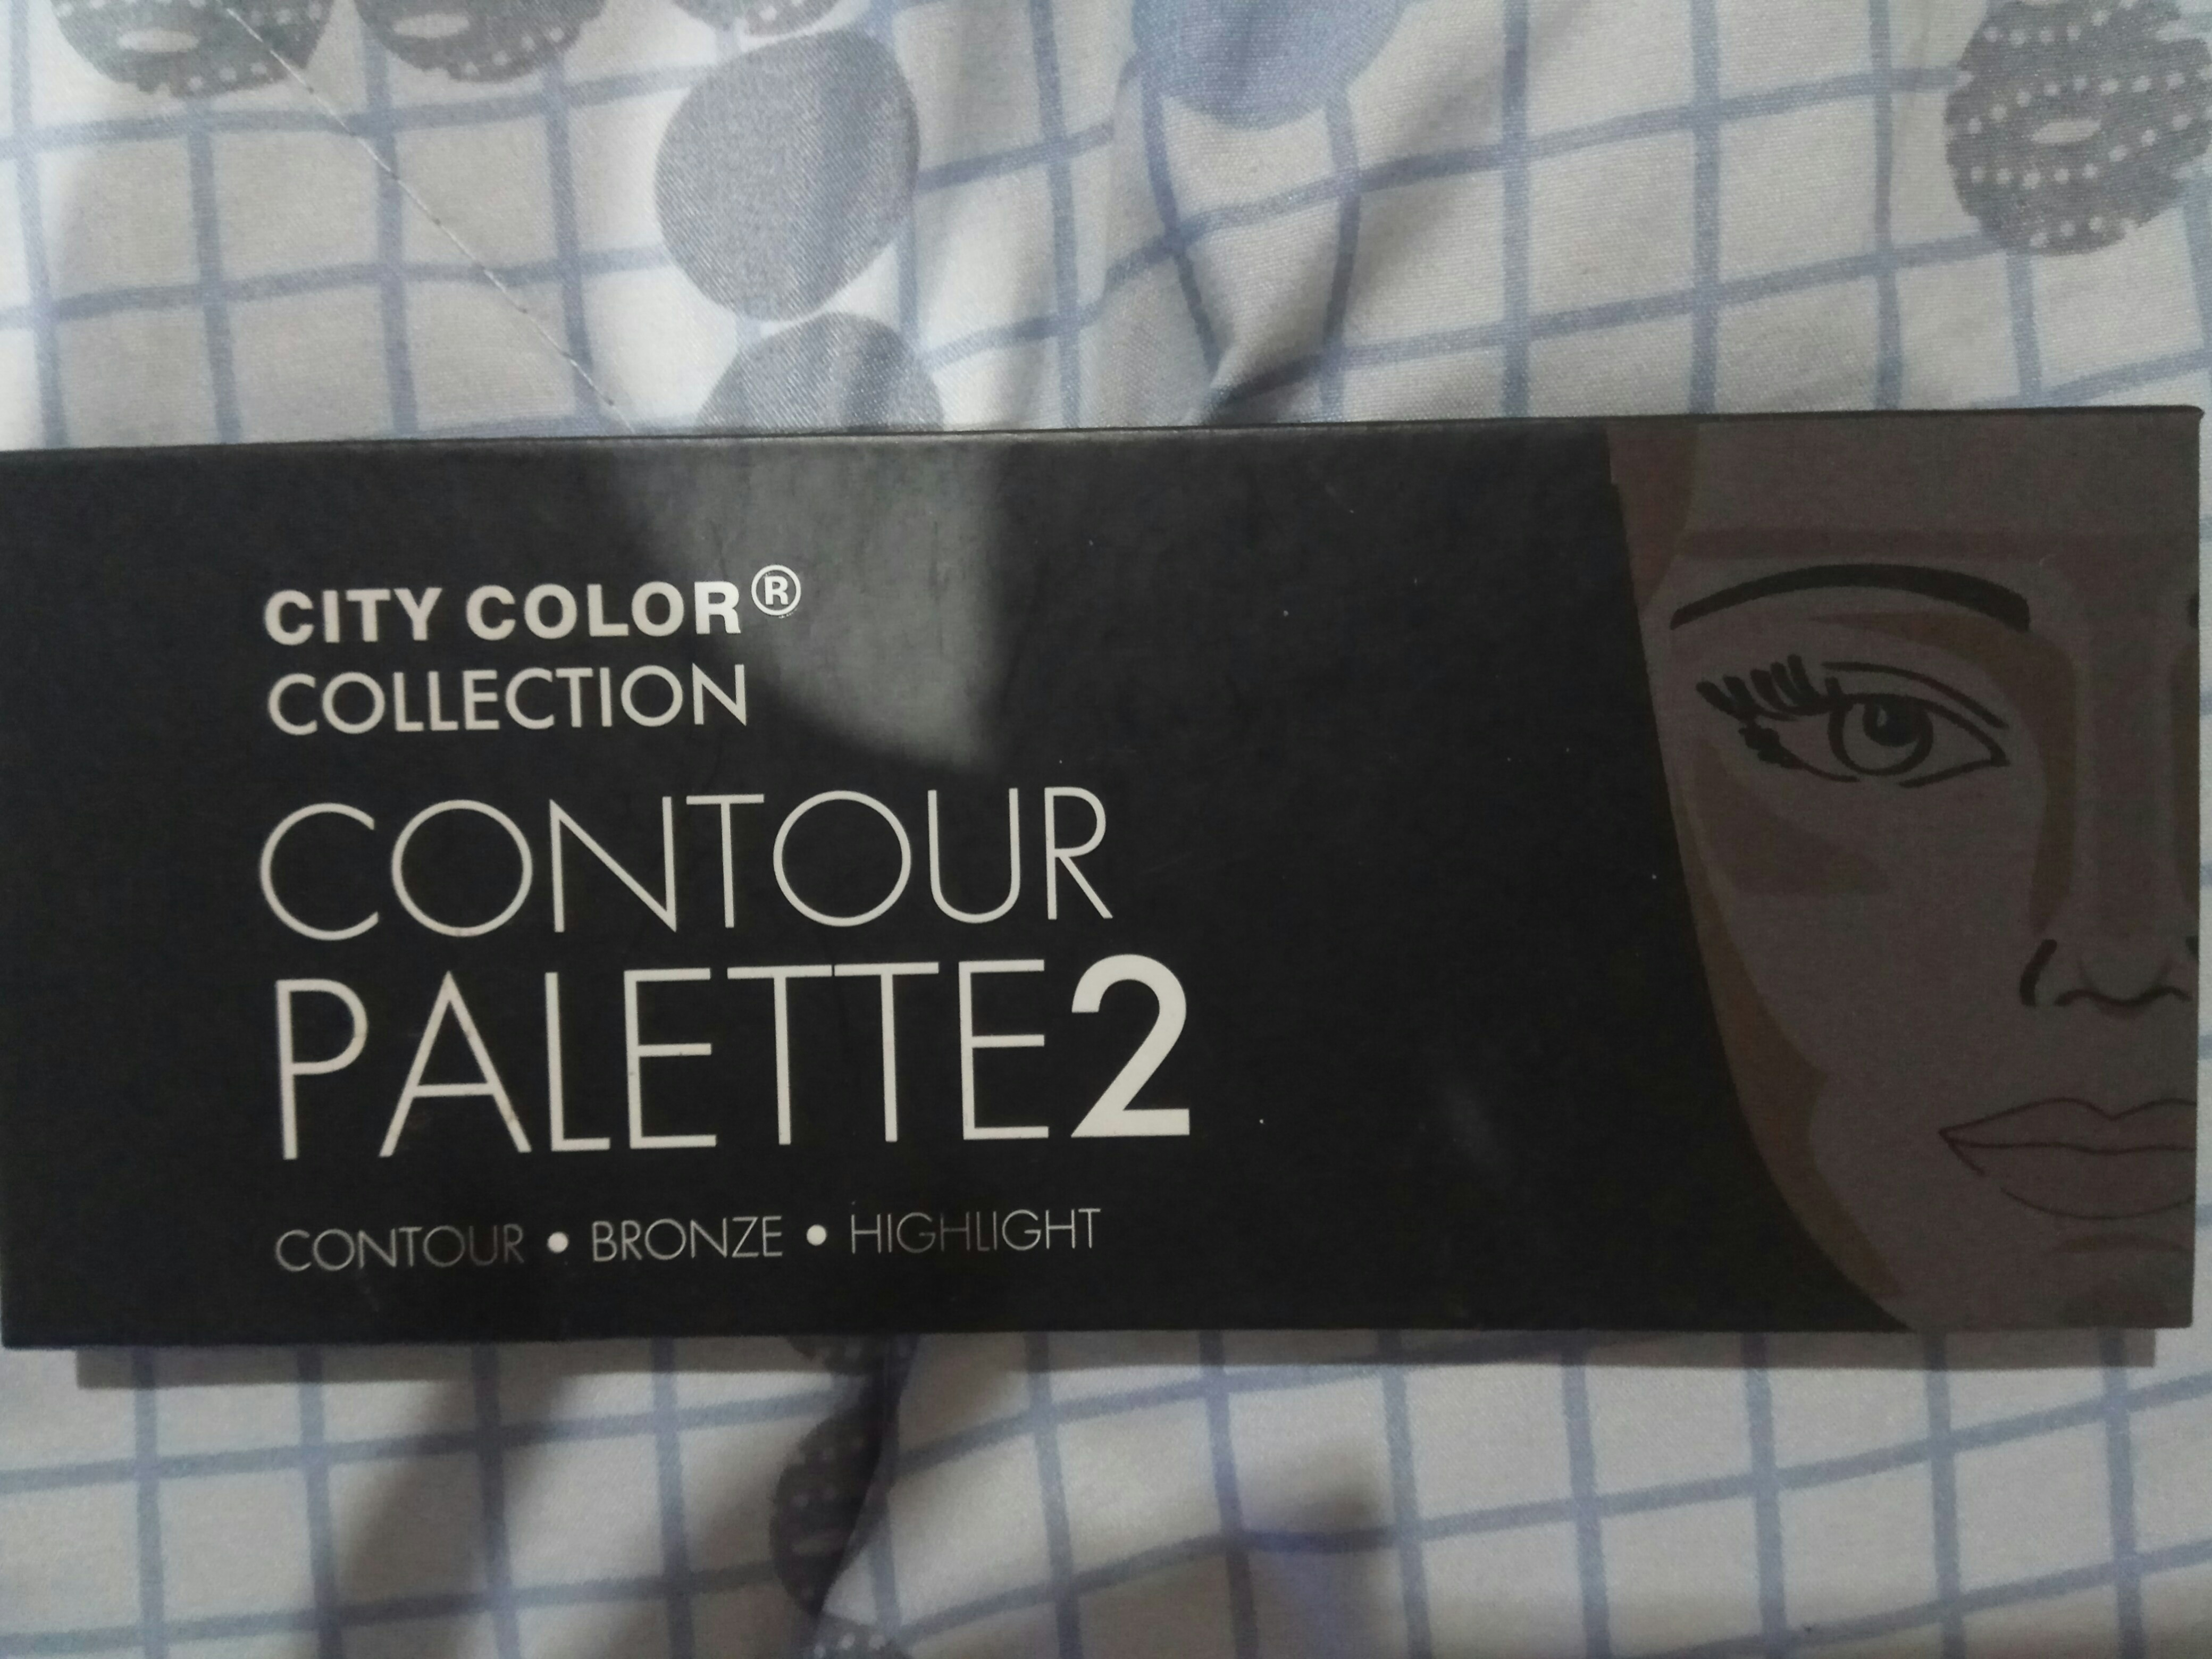 Preloved Murah City Color Contour Palette 2 Health Beauty Makeup On Carousell